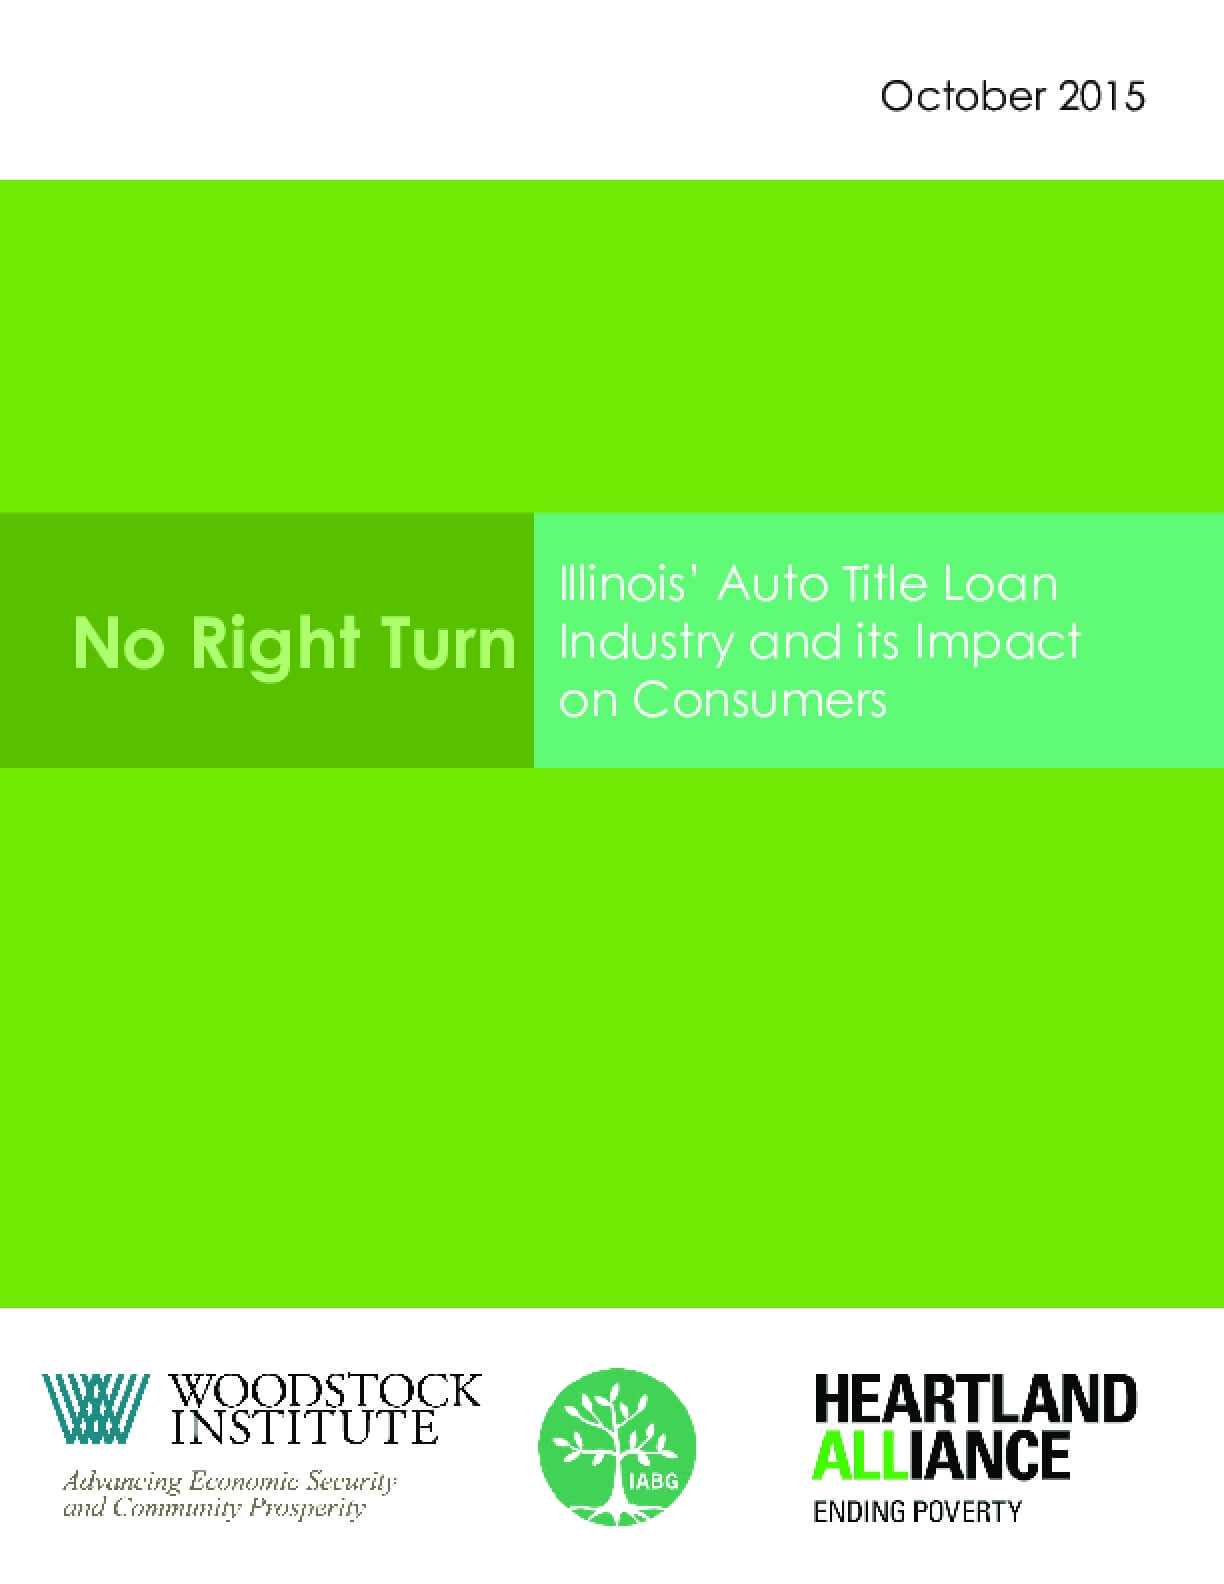 No Right Turn: Illinois' Auto Title Loan Industry and its Impact on Consumers